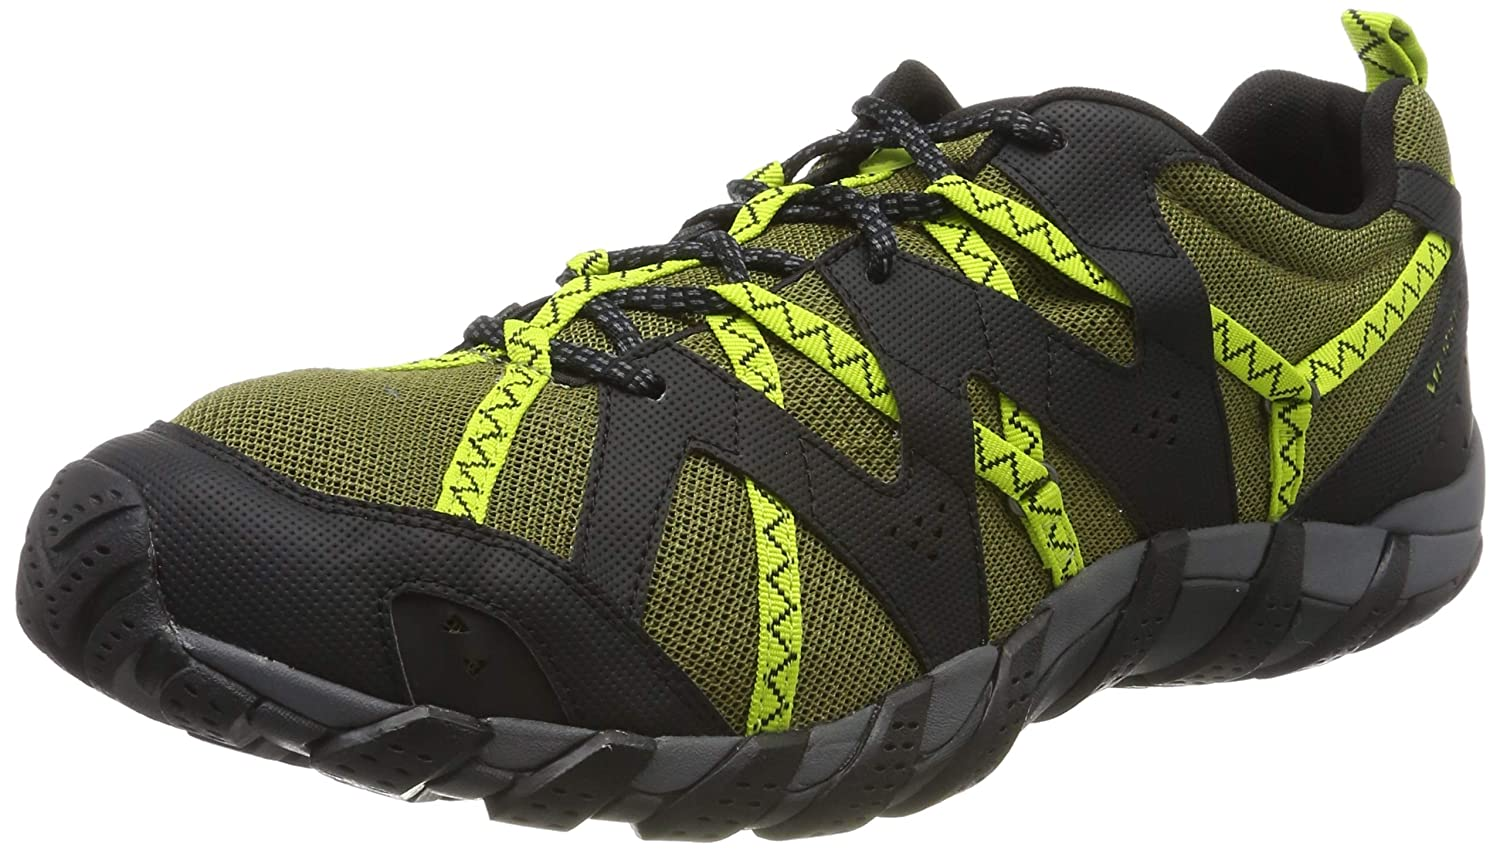 Vert (Olive Lime Olive Lime) Merrell Mens Waterpro Maipo 2 Chaussures De Marche 49 EU